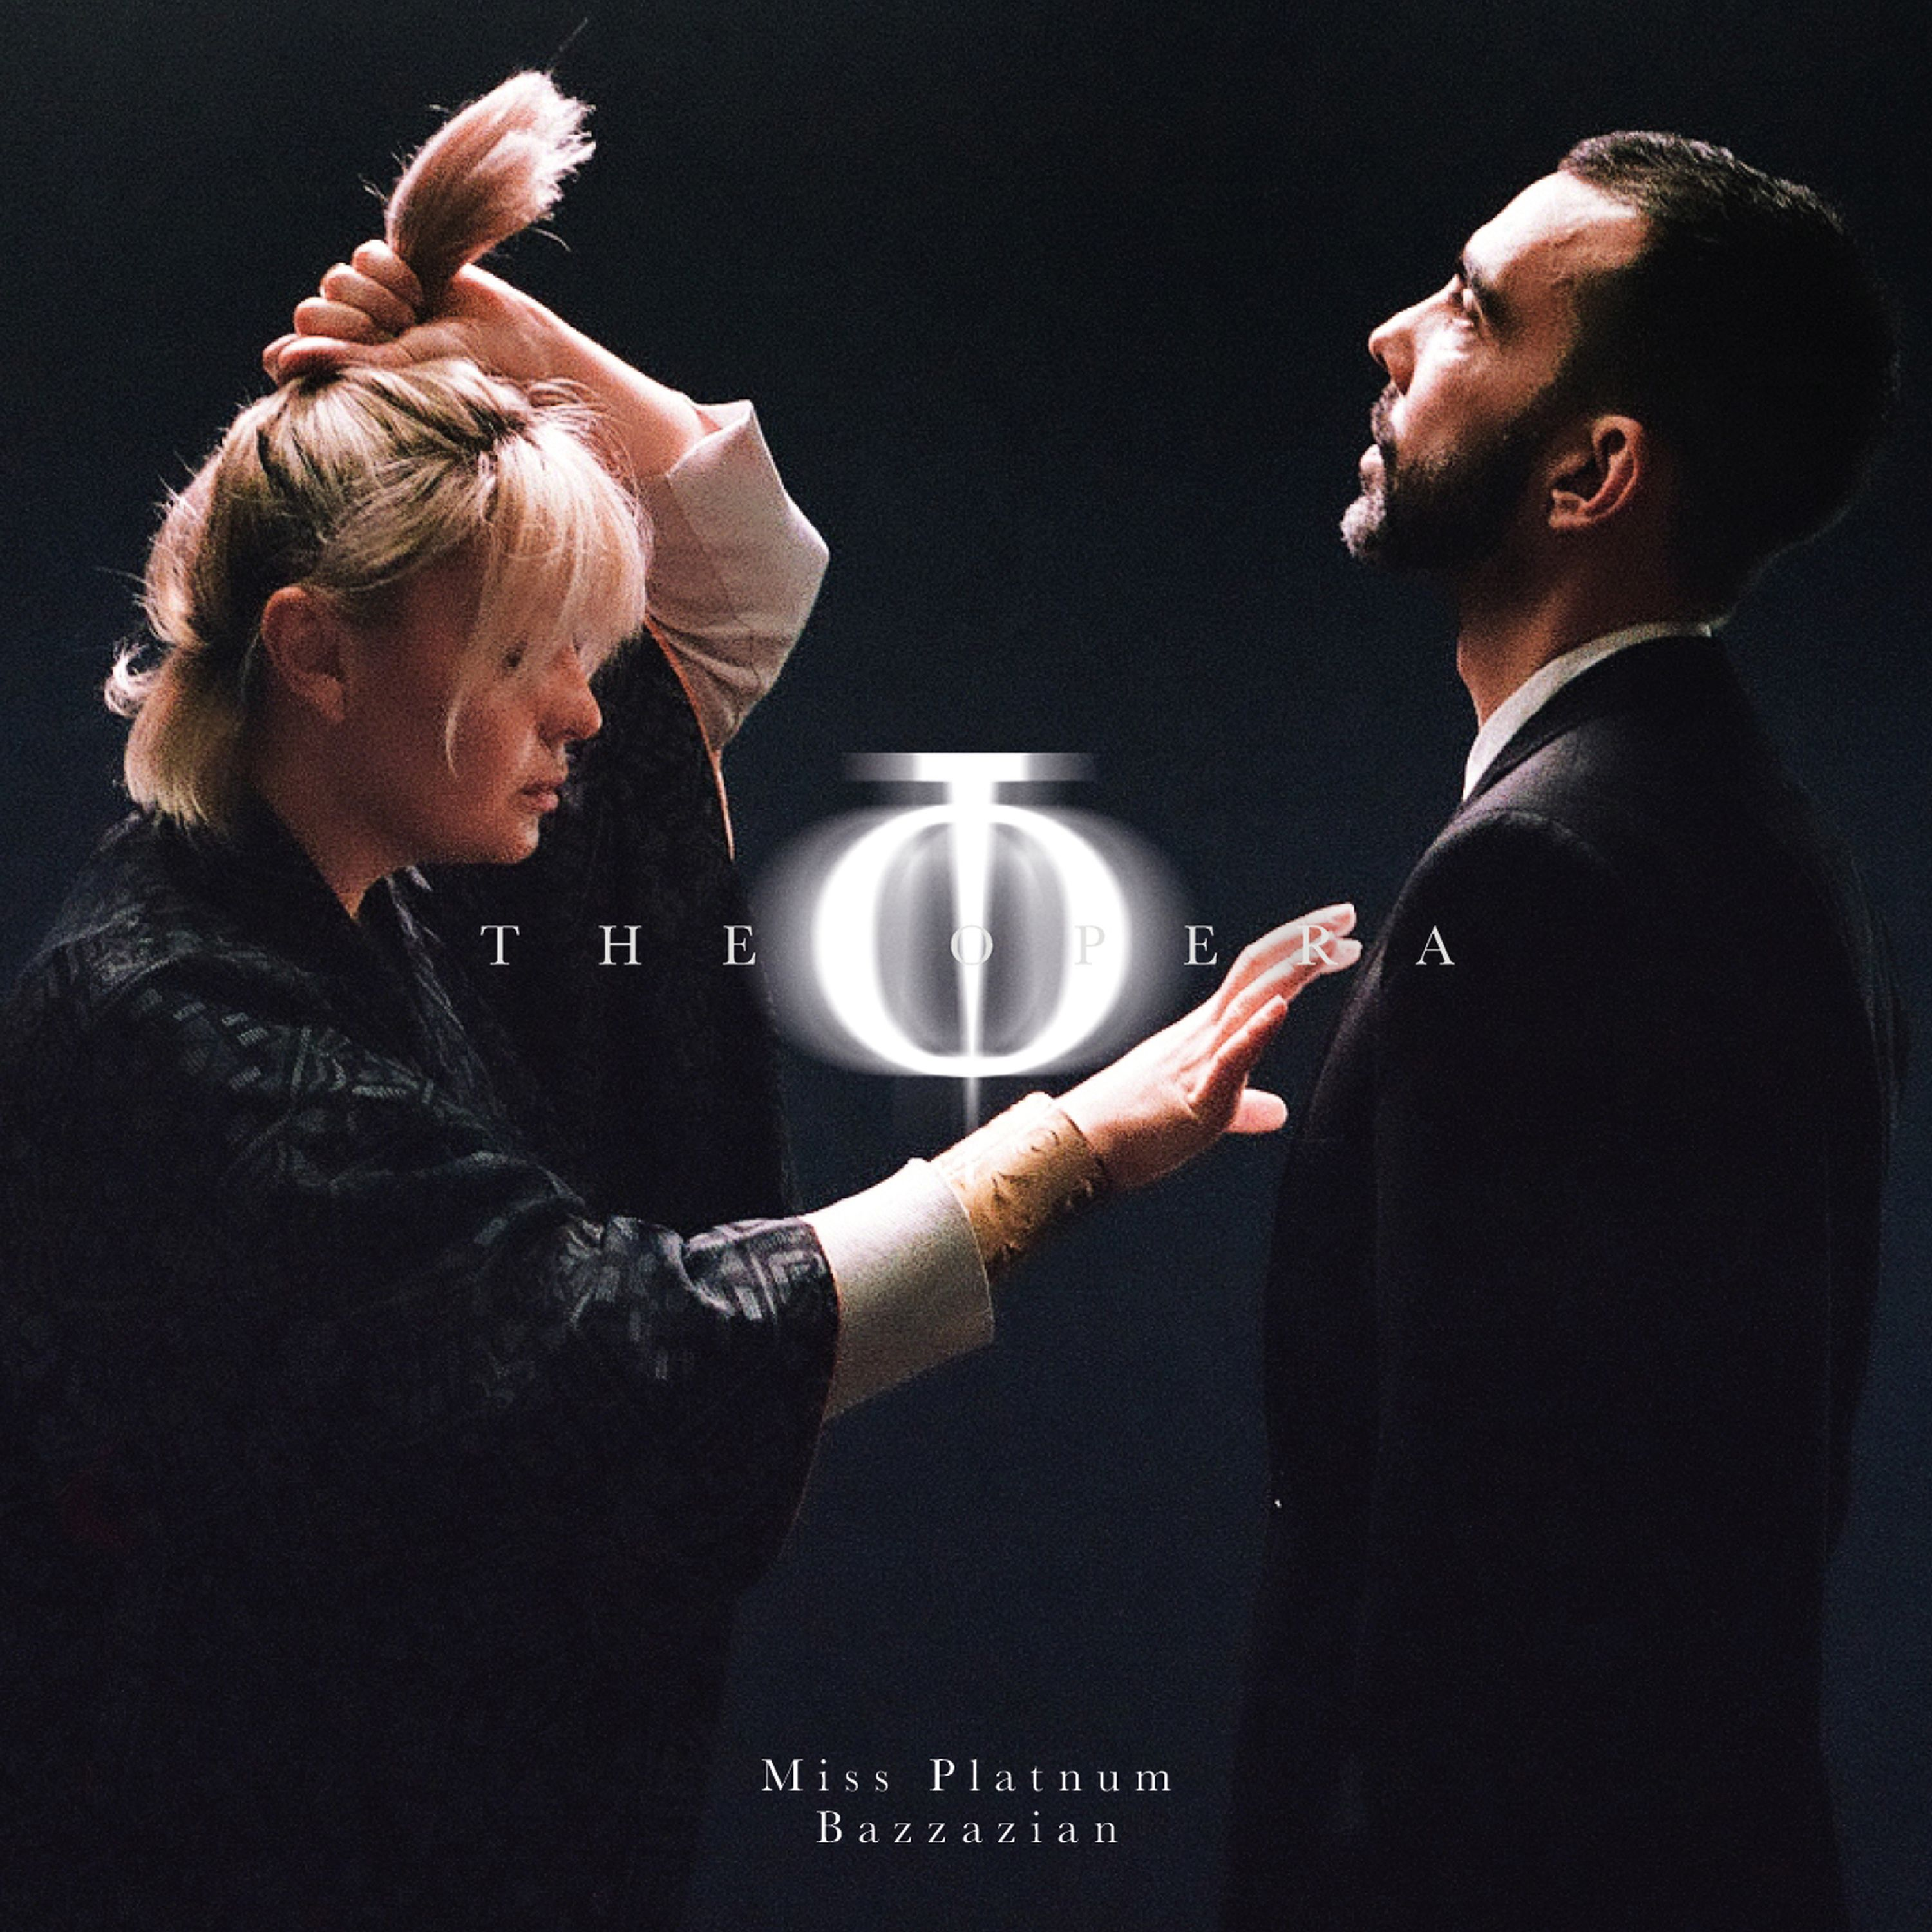 Miss Platnum & Bazzazian - The Opera (02.08.19)